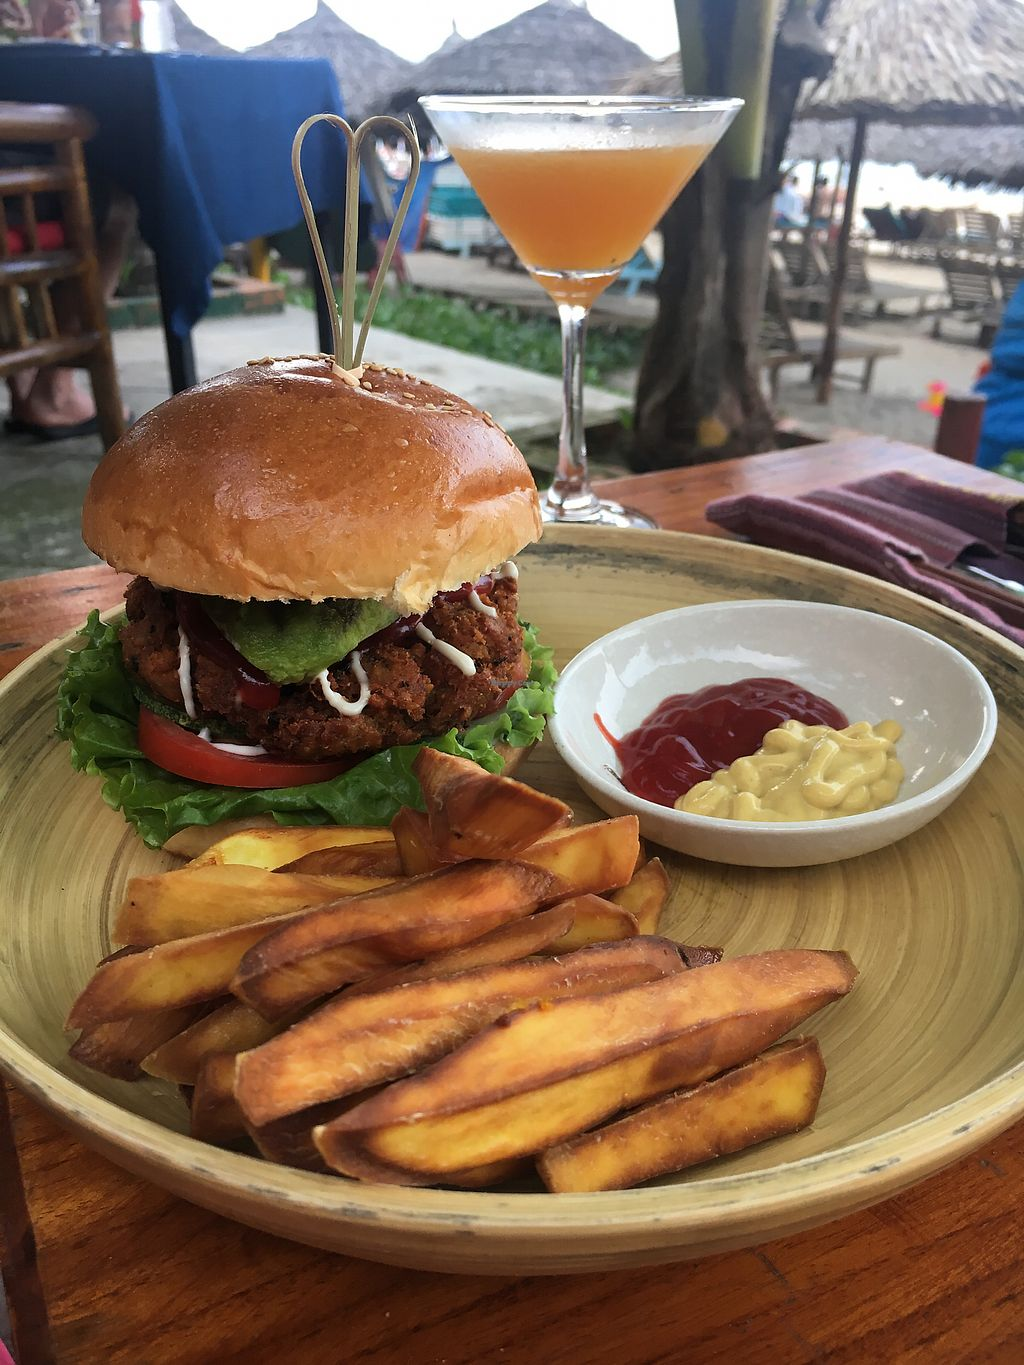 """Photo of The Fisherman Vegan Restaurant   by <a href=""""/members/profile/Tisa93"""">Tisa93</a> <br/>Honestly the best burger in the world  <br/> May 5, 2018  - <a href='/contact/abuse/image/113002/395258'>Report</a>"""